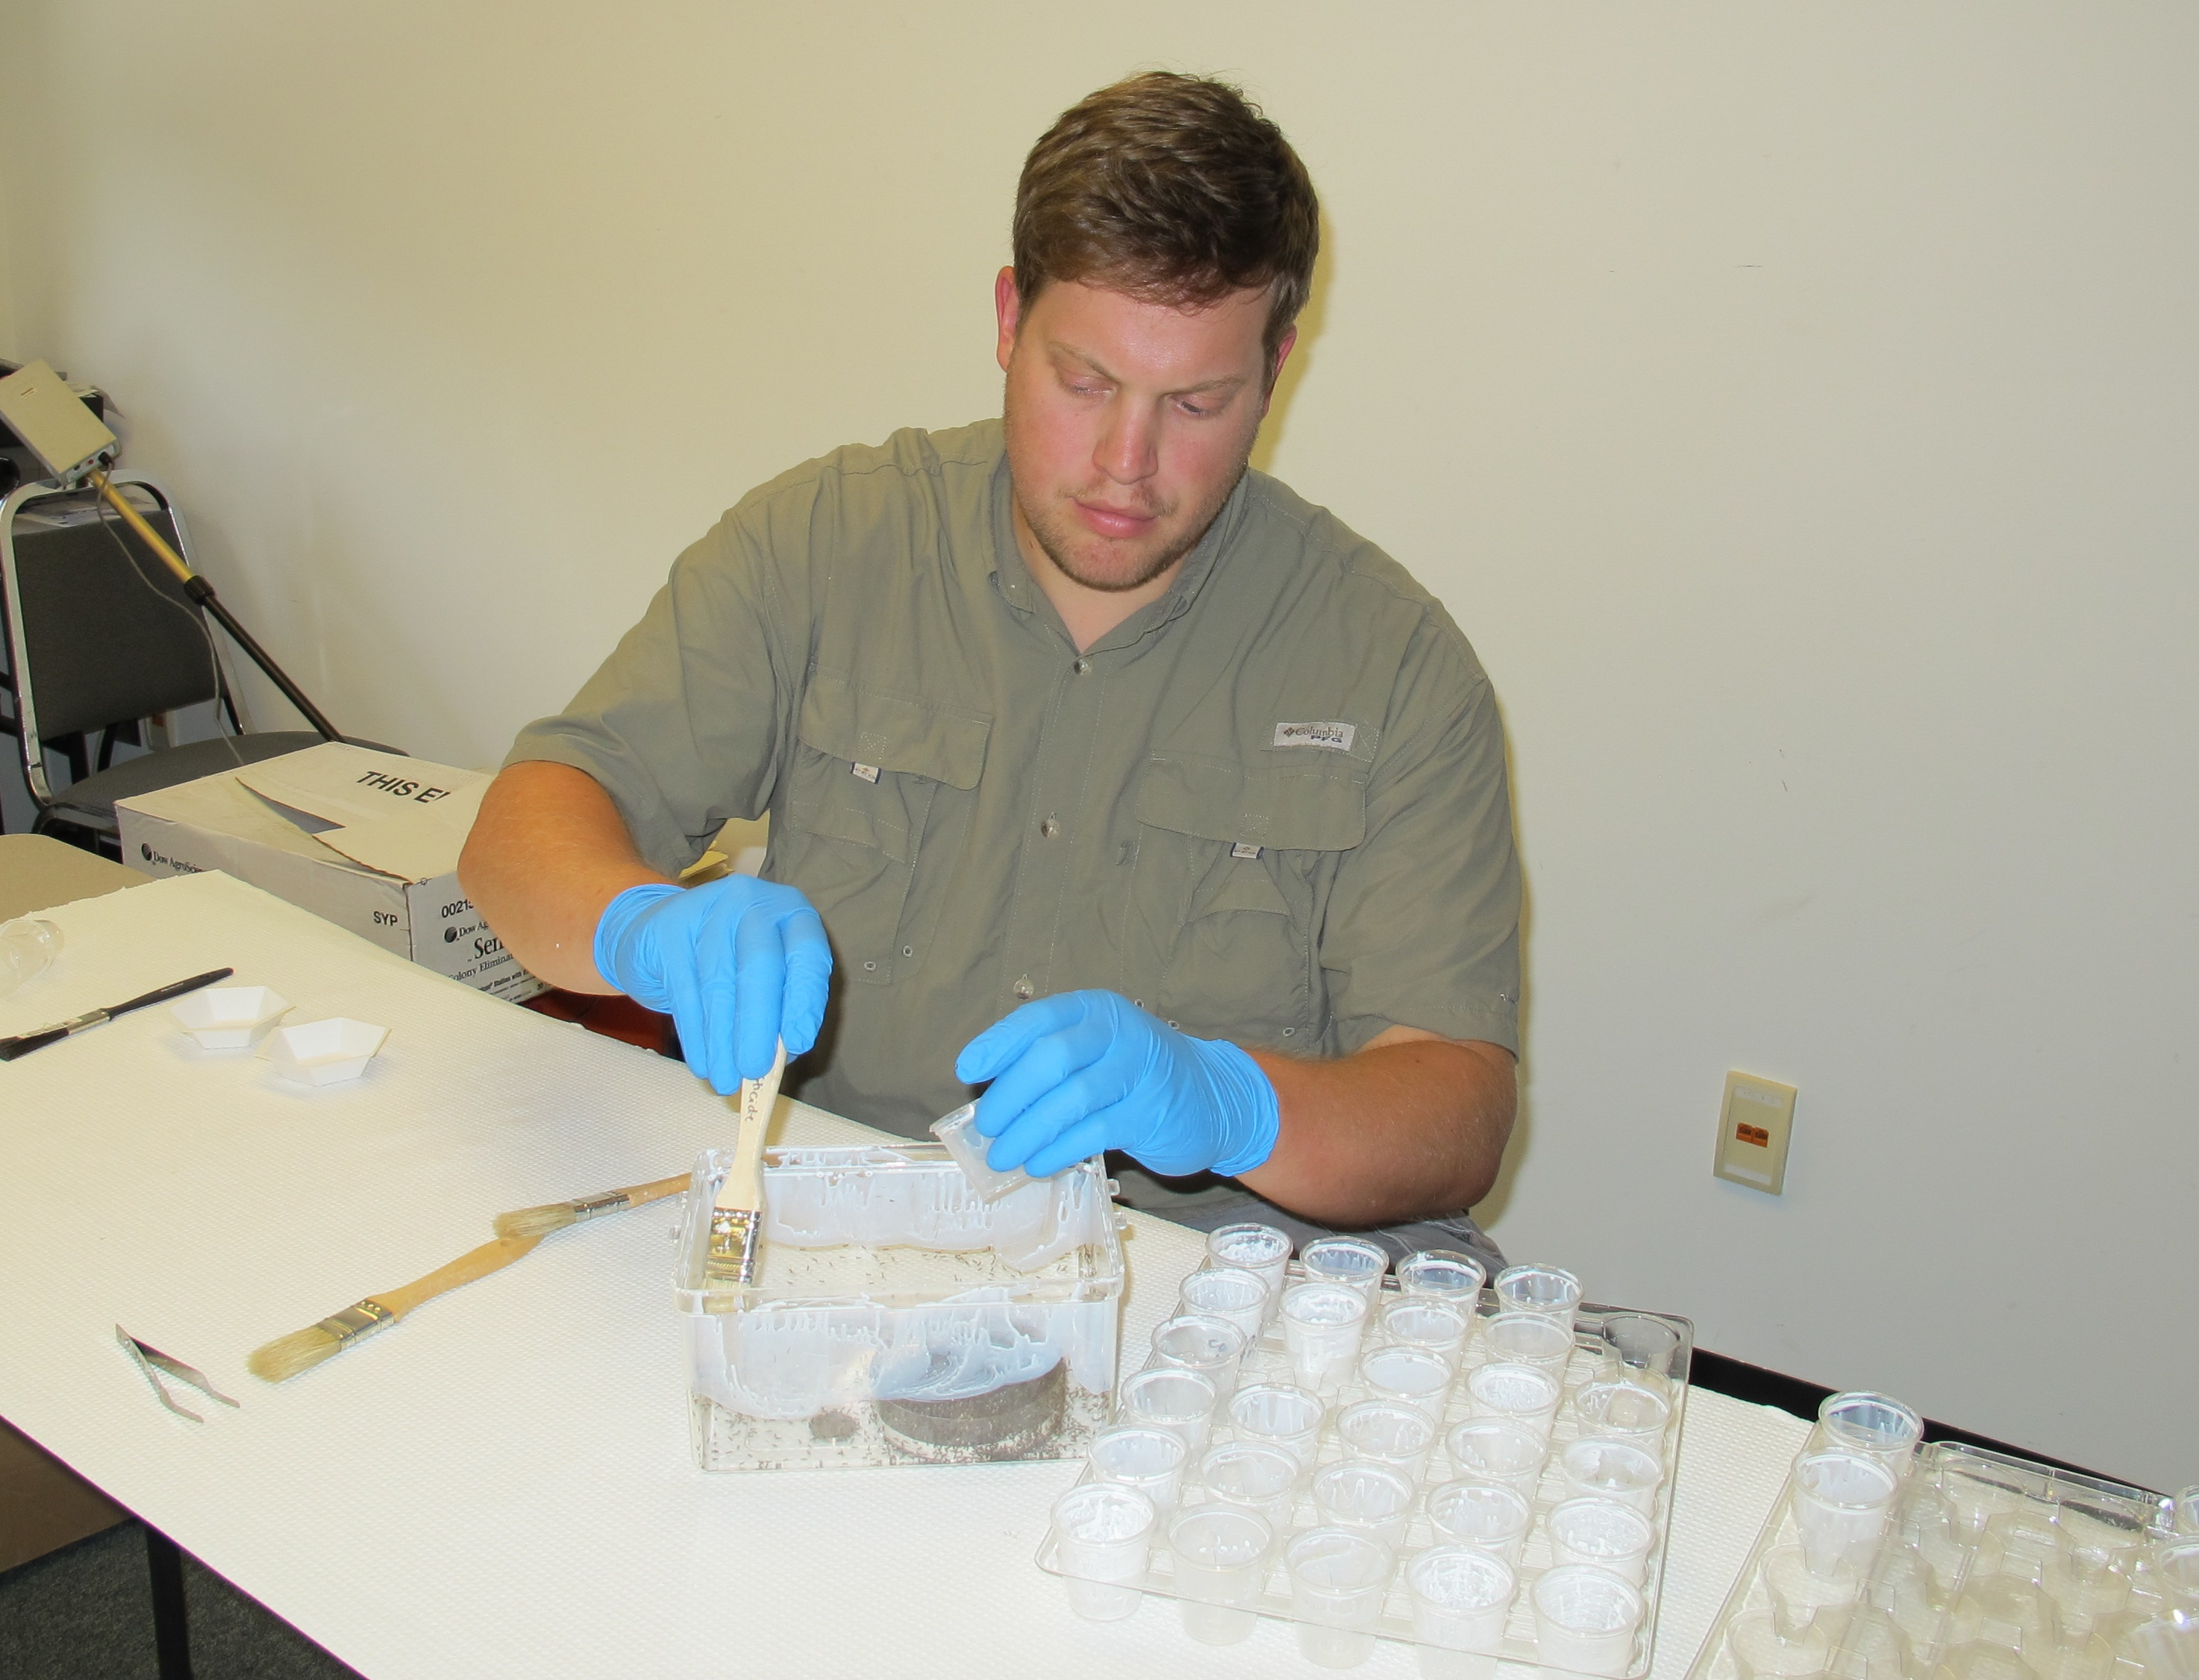 University of Georgia alumnus Jacob Holloway is shown preparing to test natural products as pest repellants in a laboratory on the campus in Griffin. He tested a few natural remedies as part of his Master's thesis for the College of Agricultural and Environmental Sciences.